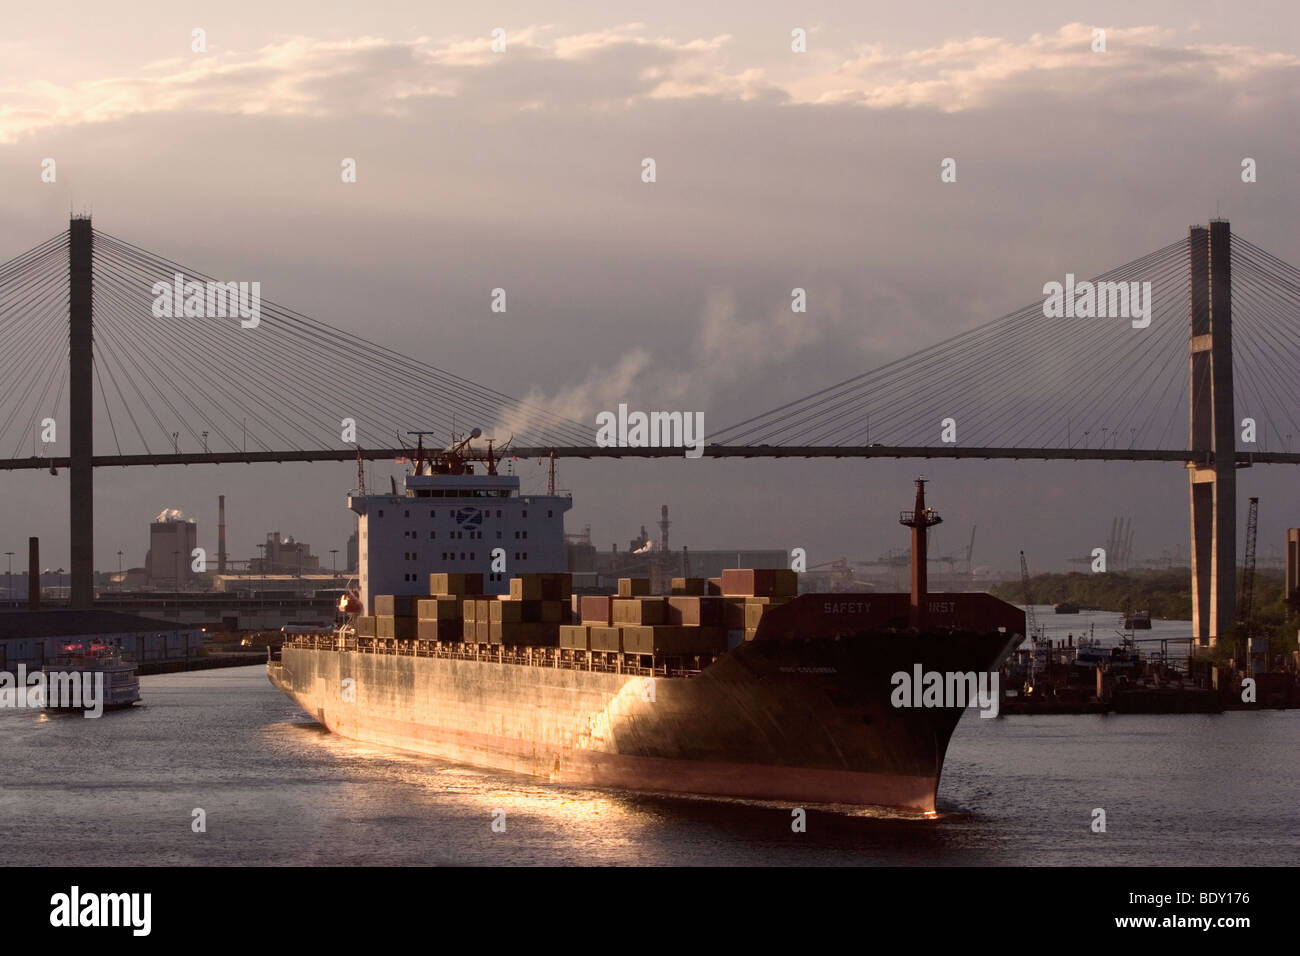 The MSC Colombia container ship navigates under the Talmadge Memorial Bridge on the Savannah River - Stock Image